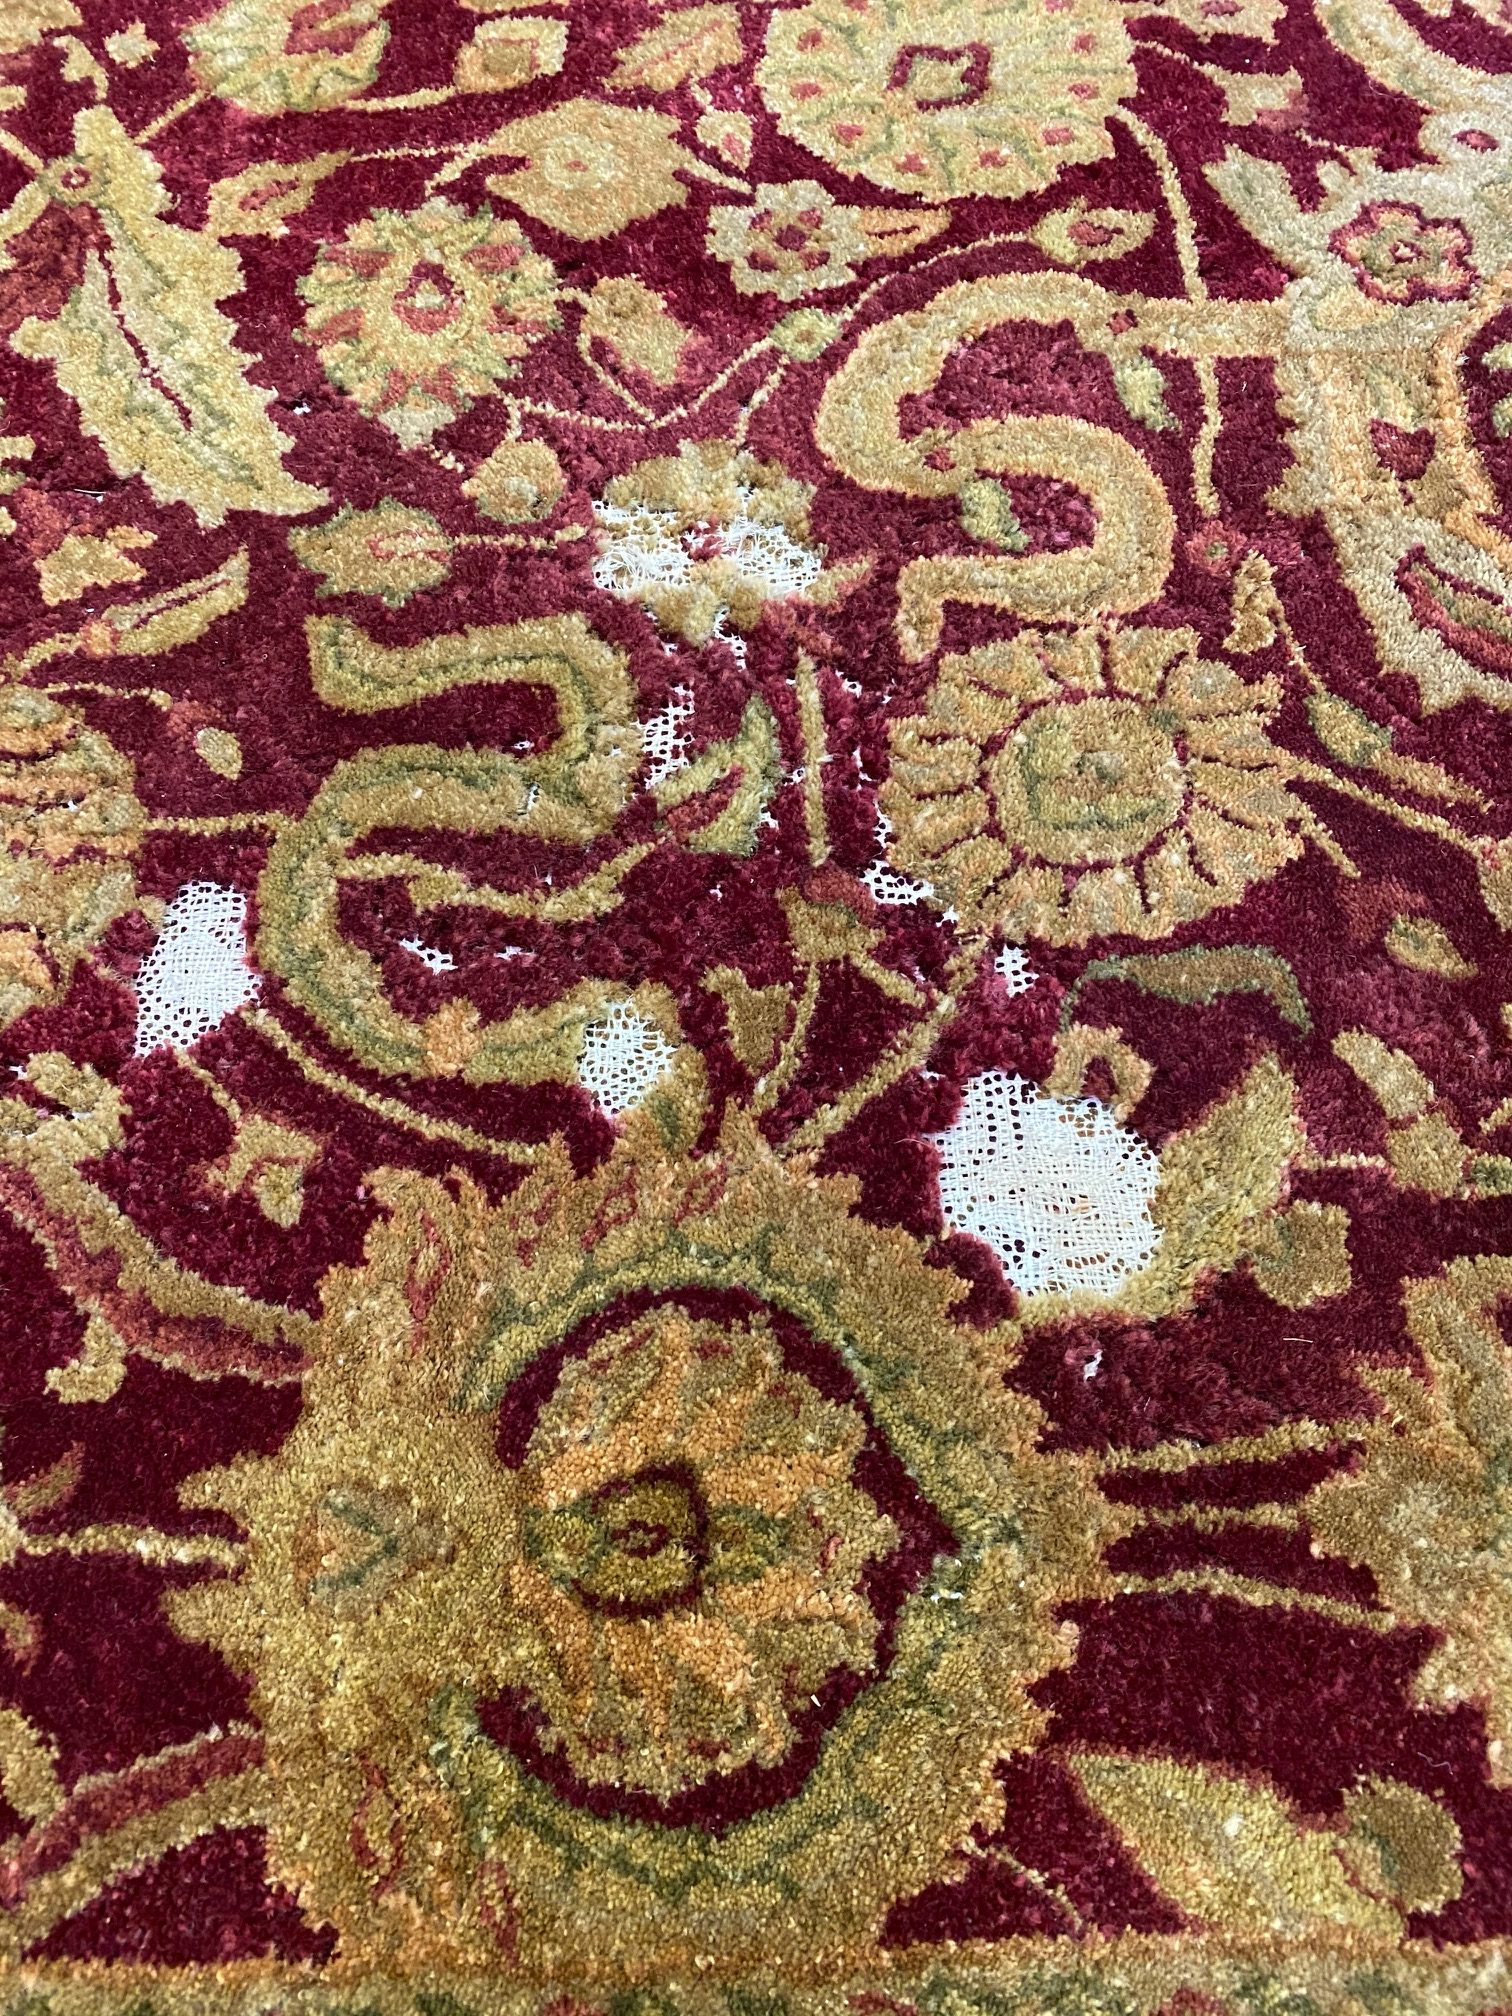 Rug Care - Moth Damage